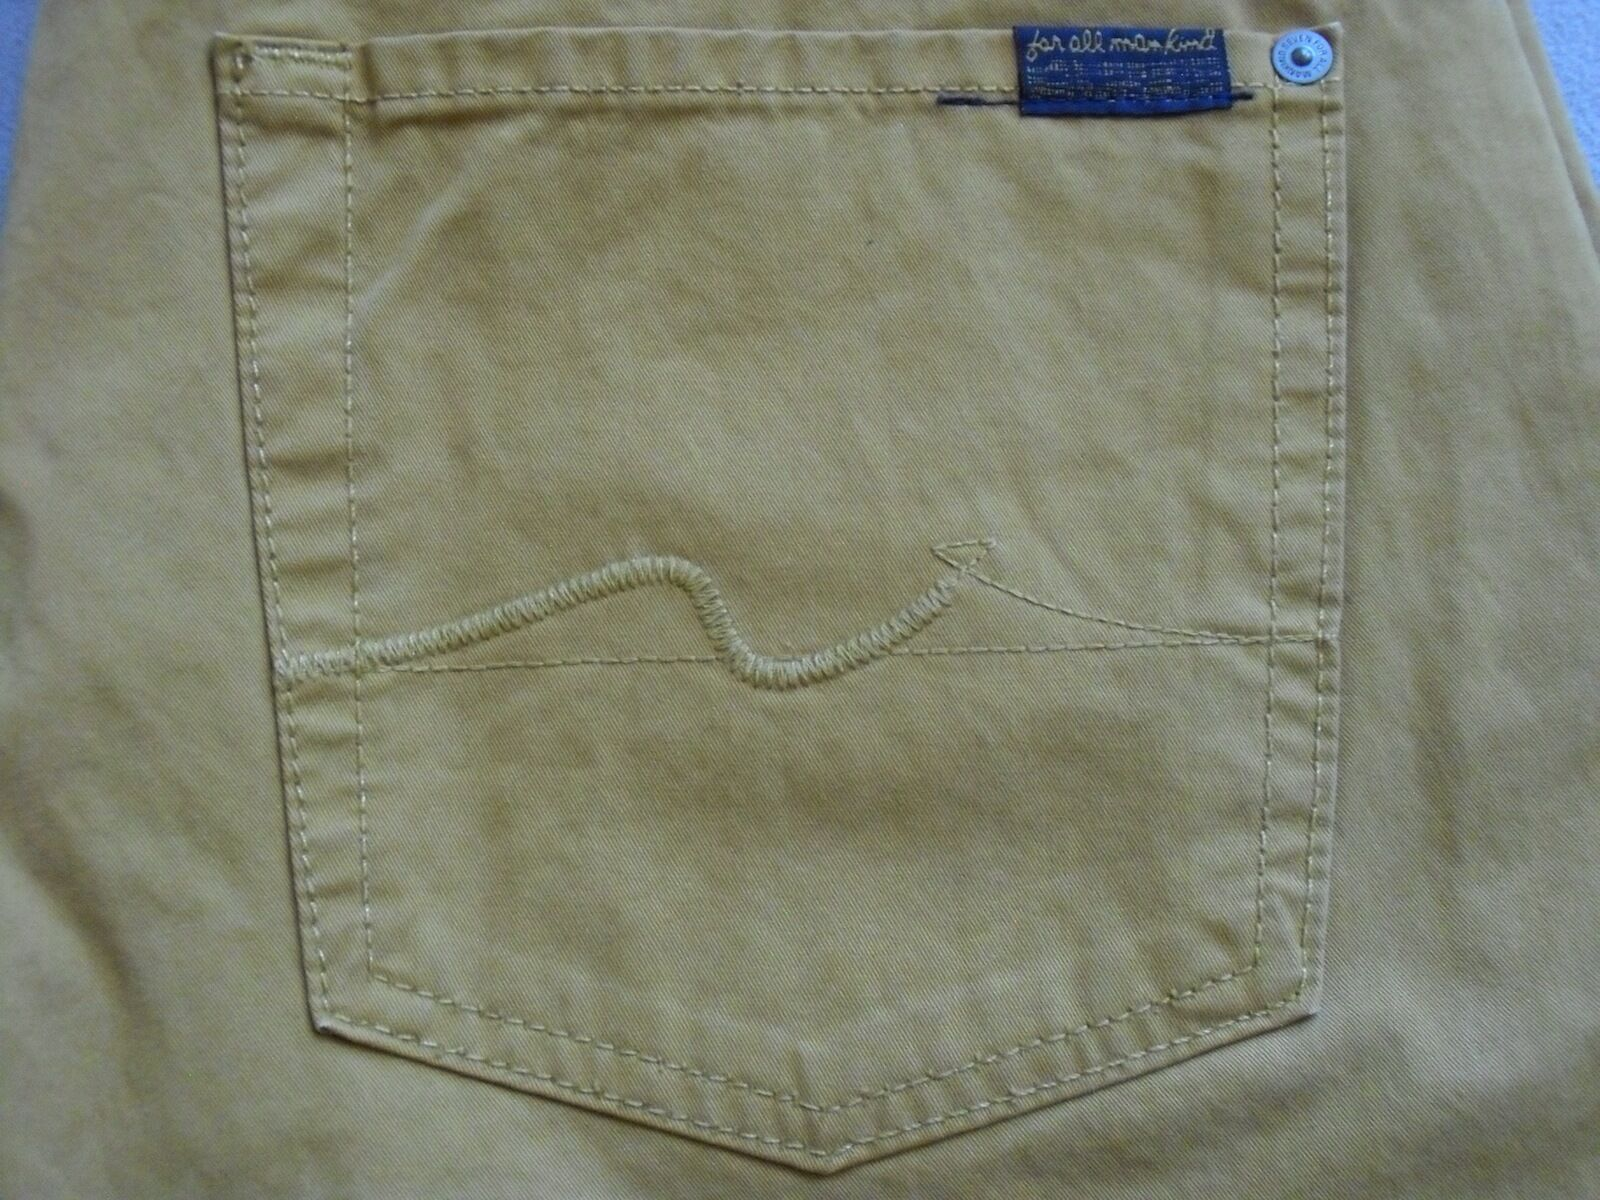 SEVEN 7 FOR ALL MANKIND MENS THE STRAIGHT MUSTARD YELLOW JEAN PANTS SIZE 31 NEW